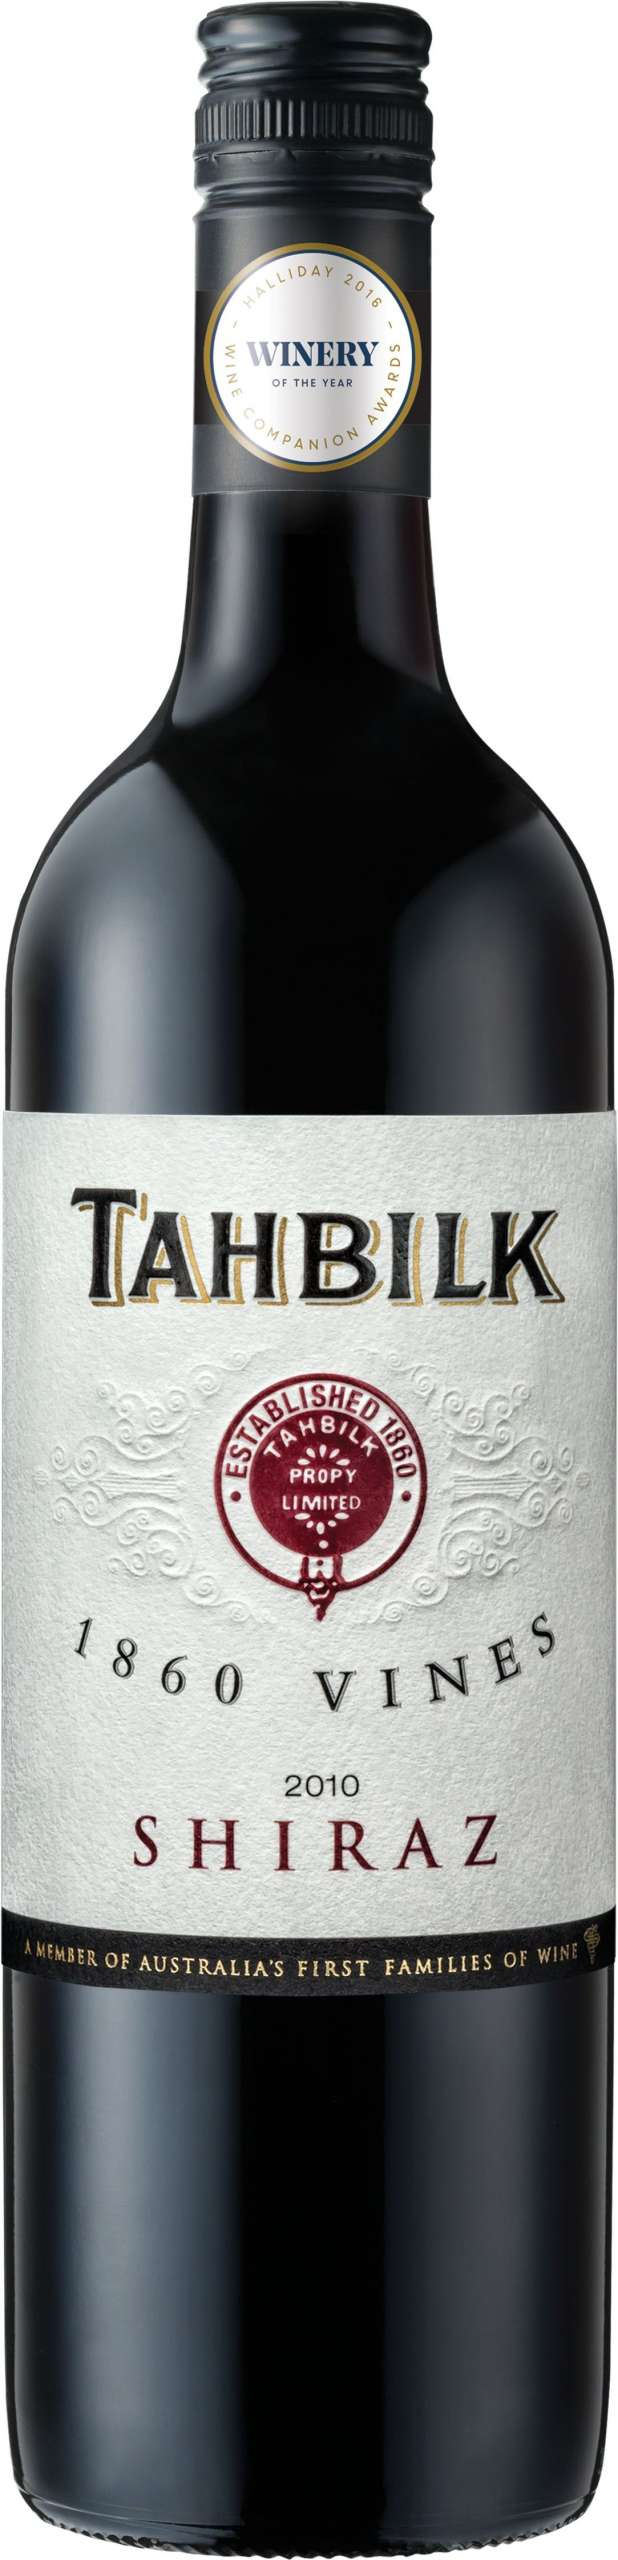 Tahbilk '1860 Vines' Shiraz 2000-0